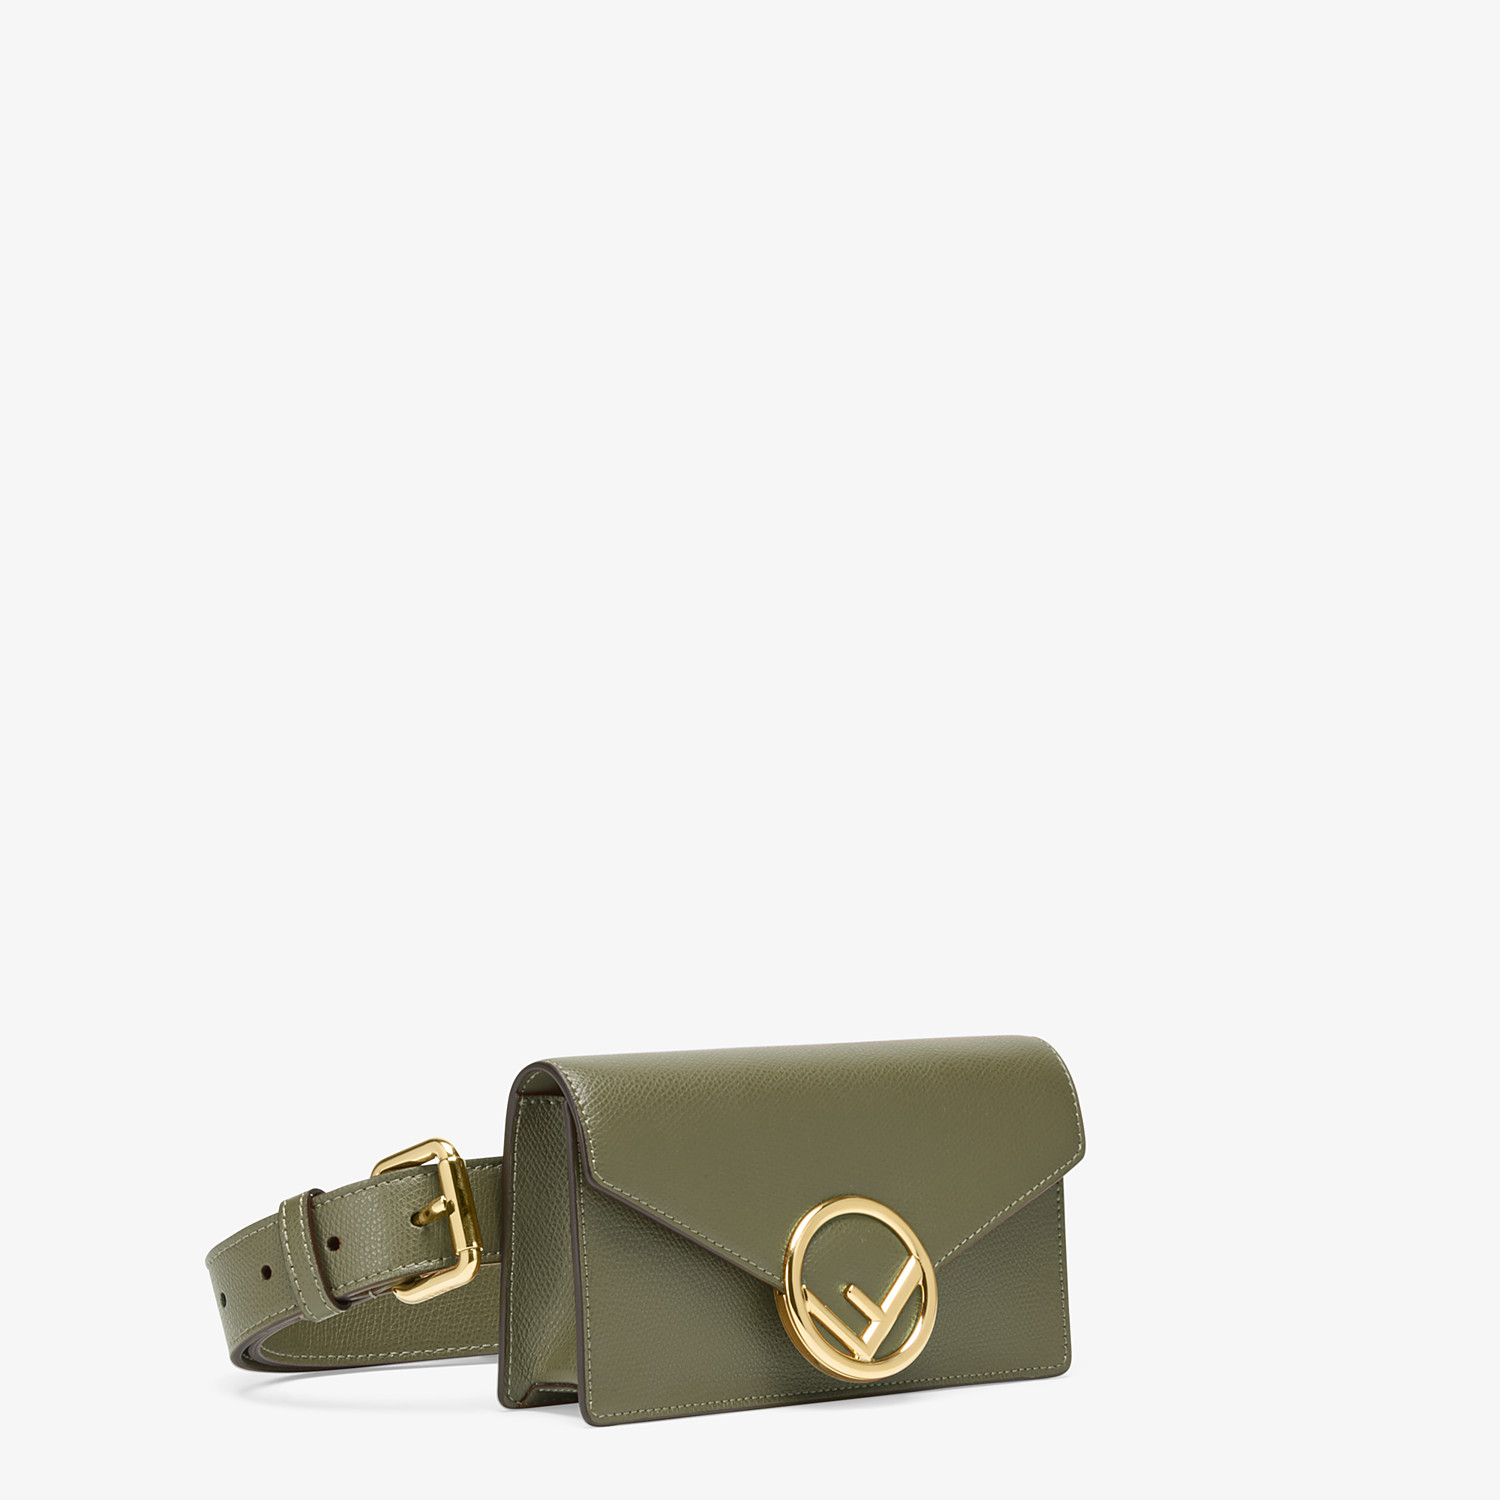 FENDI BELT BAG - Green leather belt bag - view 2 detail